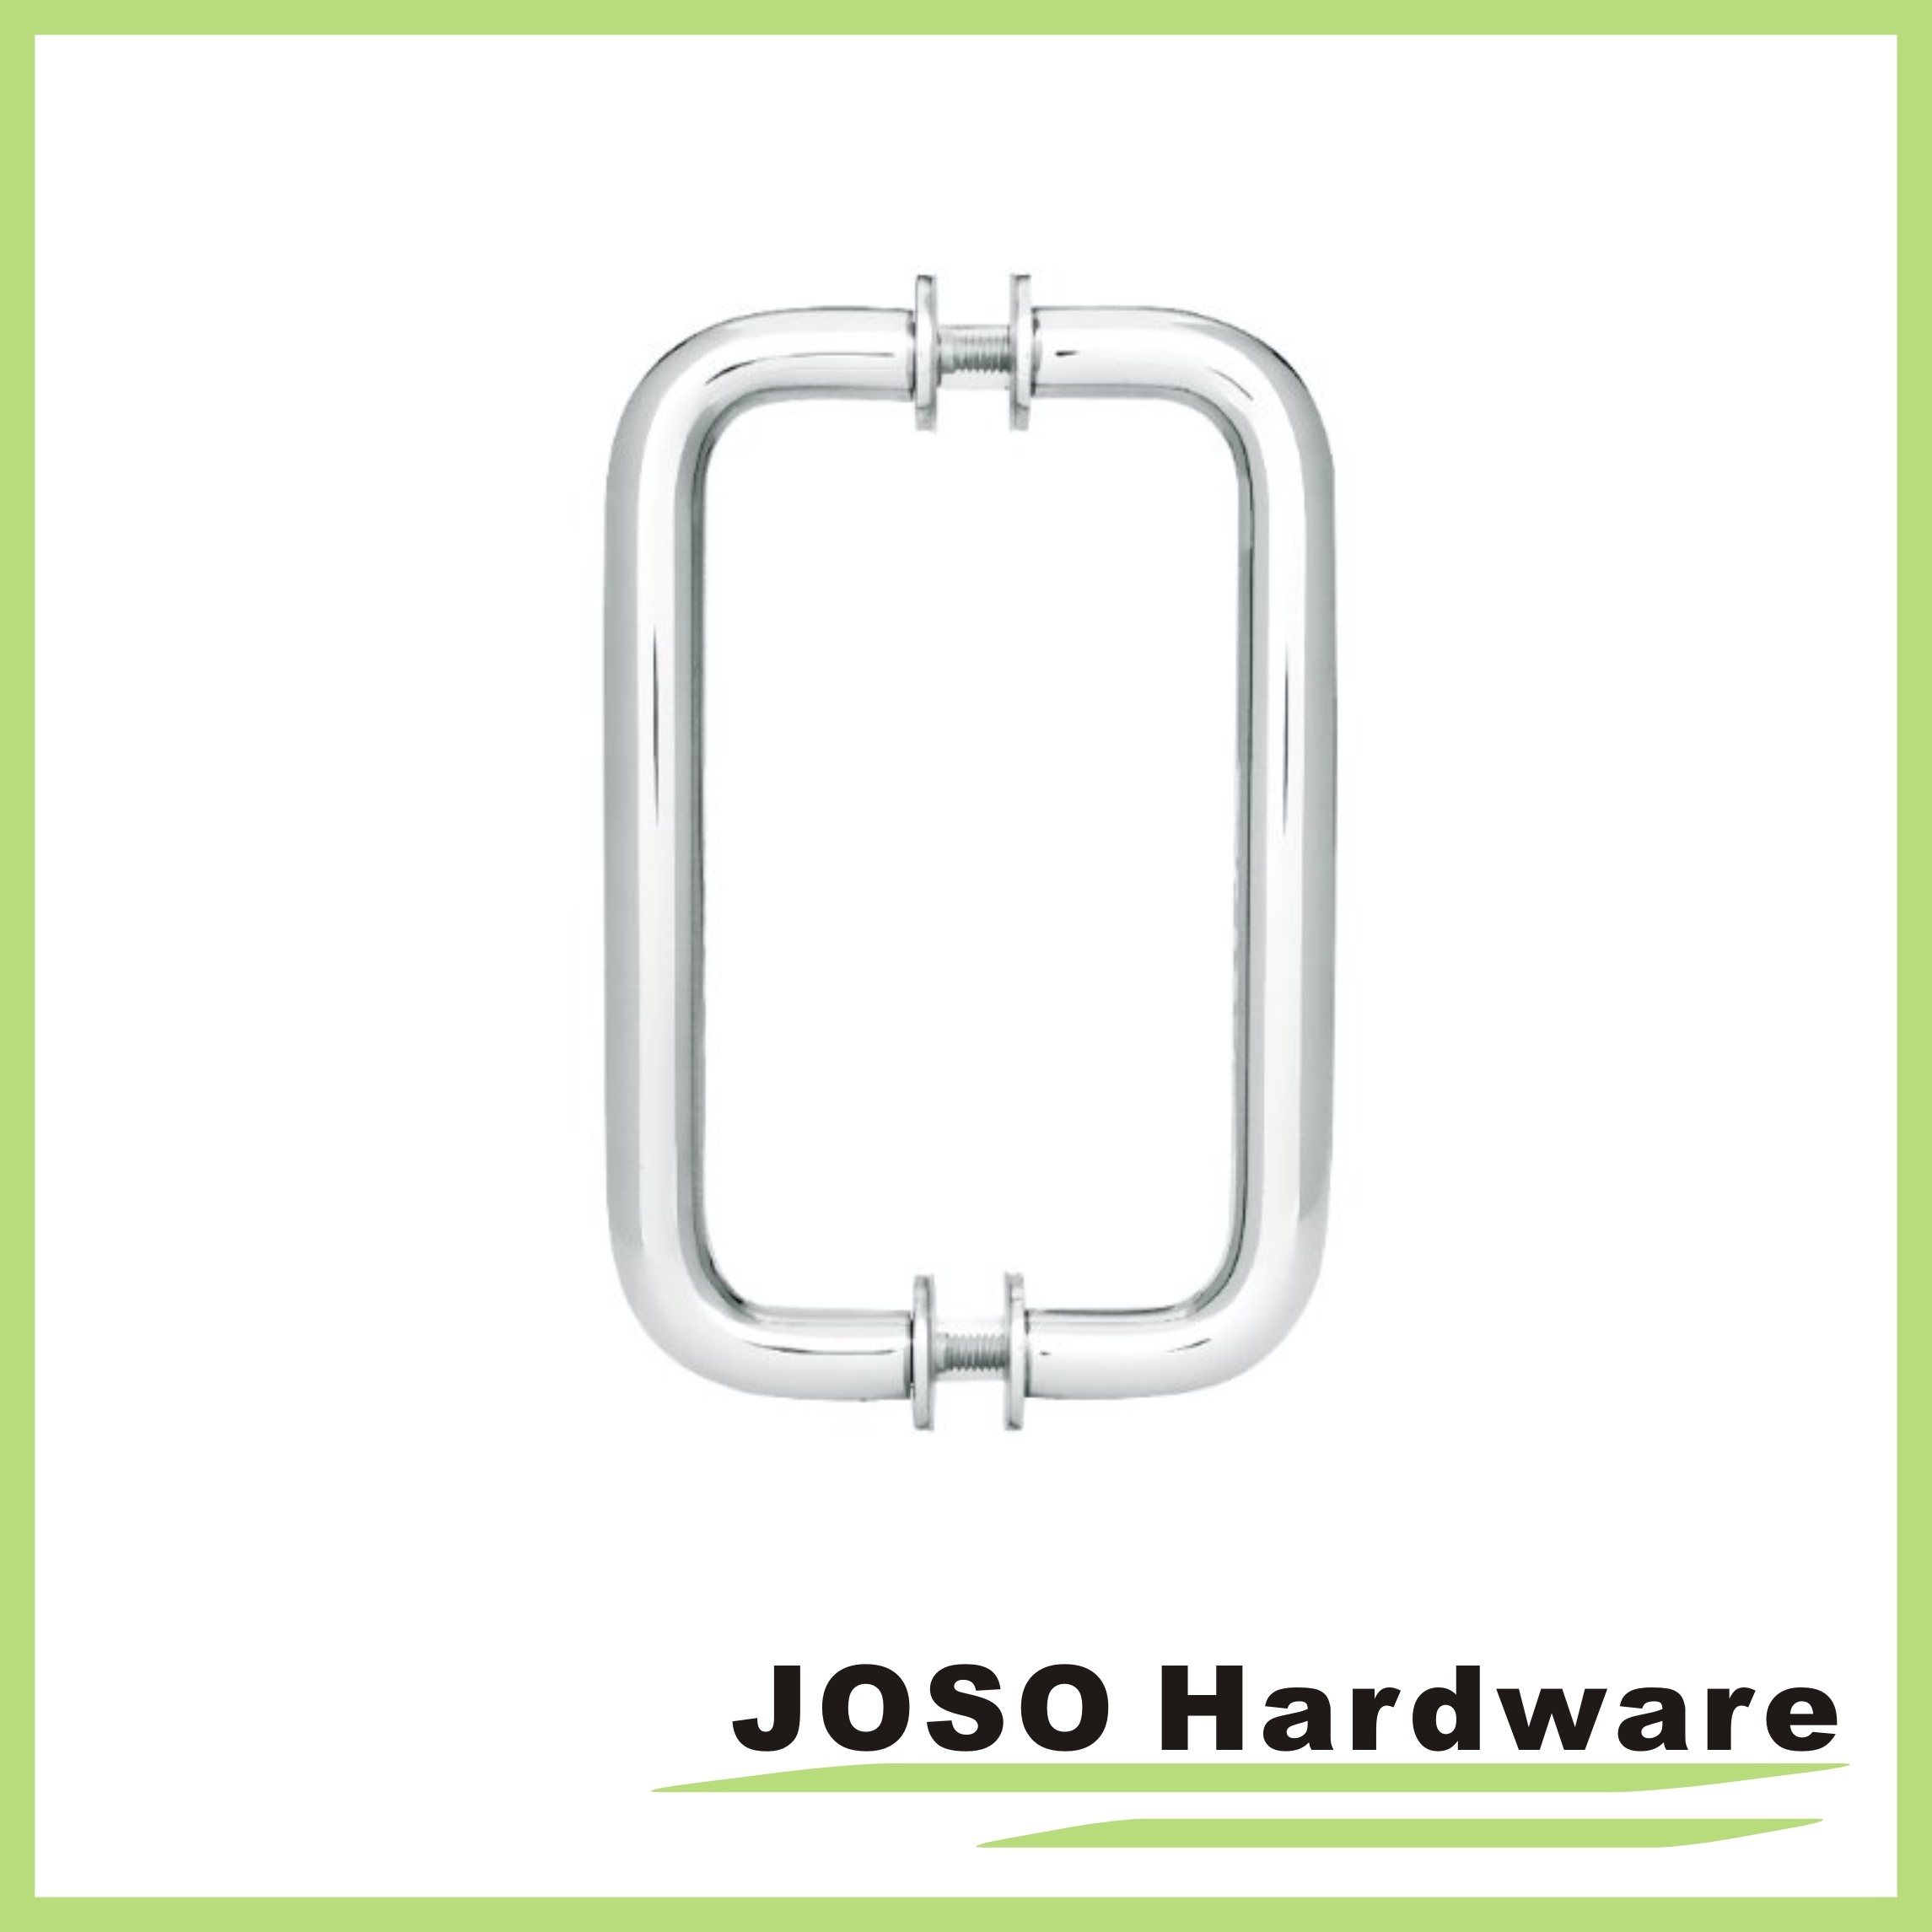 6inch Back-to-Back Stainless Steel Shower Door Pull Handle